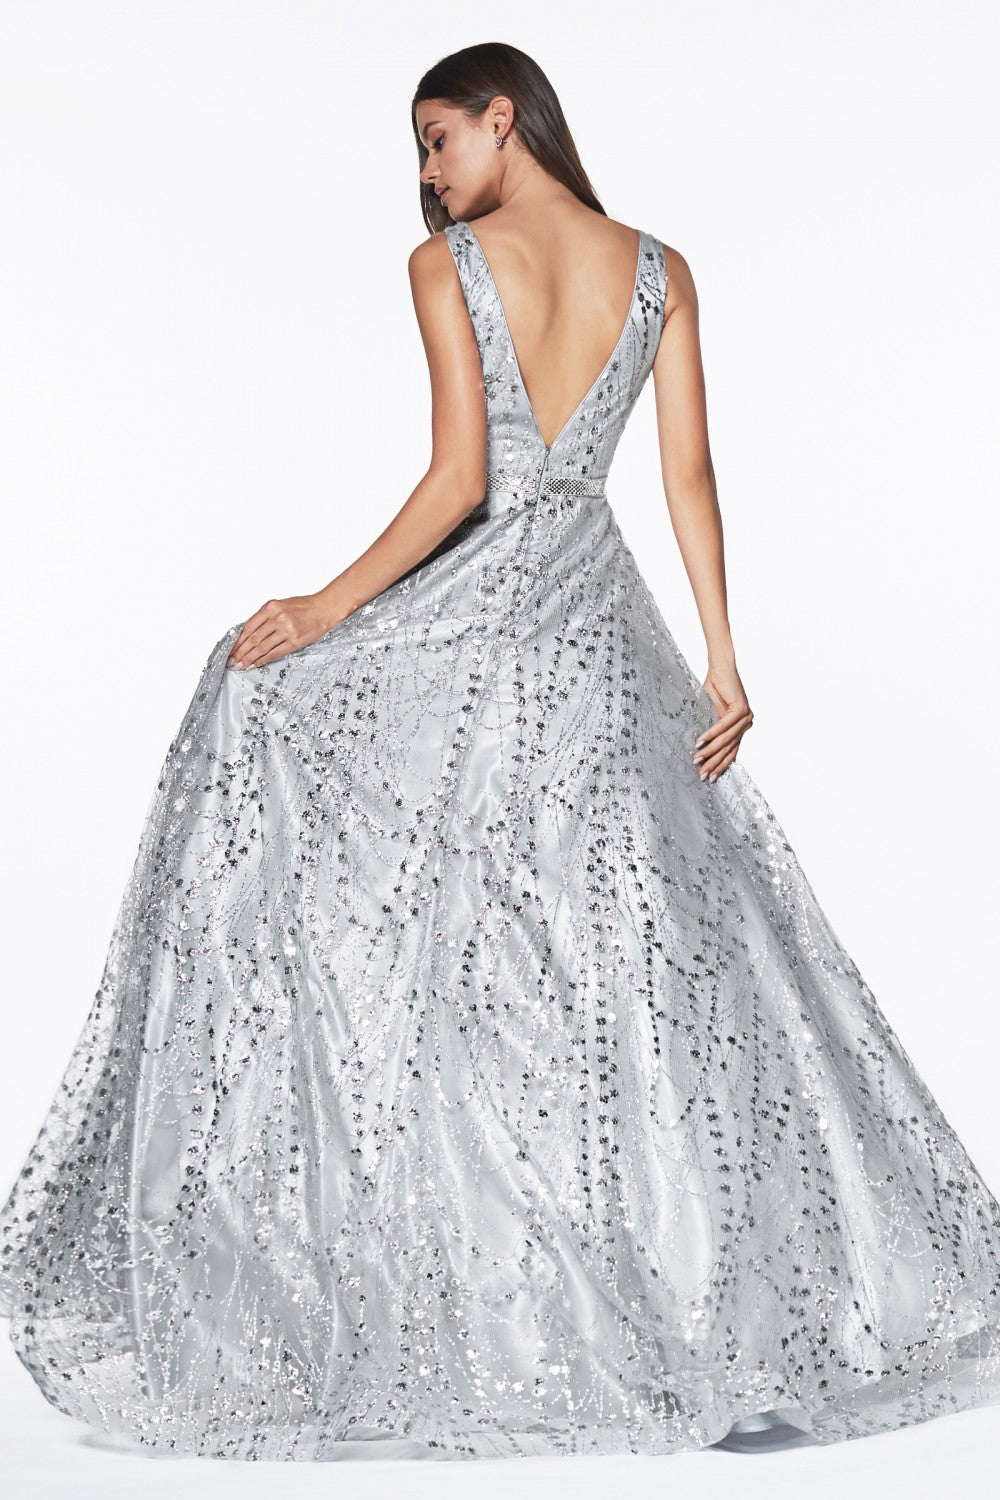 Glitter Detailed Ball Gown With Deep Plunge And Open Back